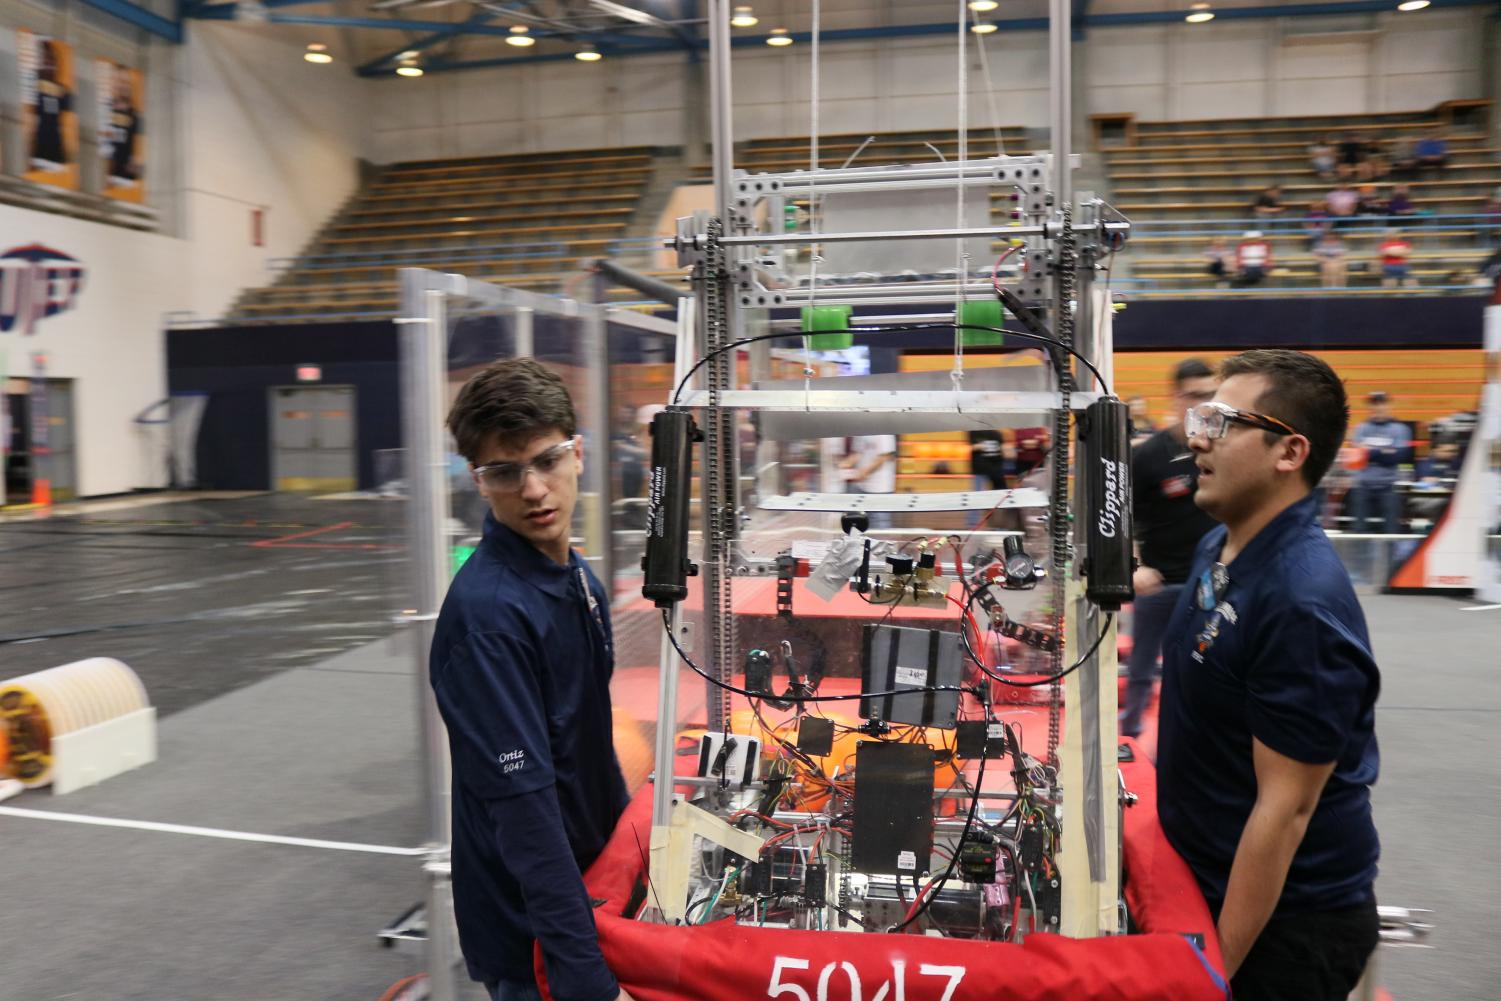 Competitors+take+their+robot+out+from+the+arena+in+Memorial+Gym+at+the+University+of+Texas+at+El+Paso%2C+Saturday%2C+March+2%2C+2019.